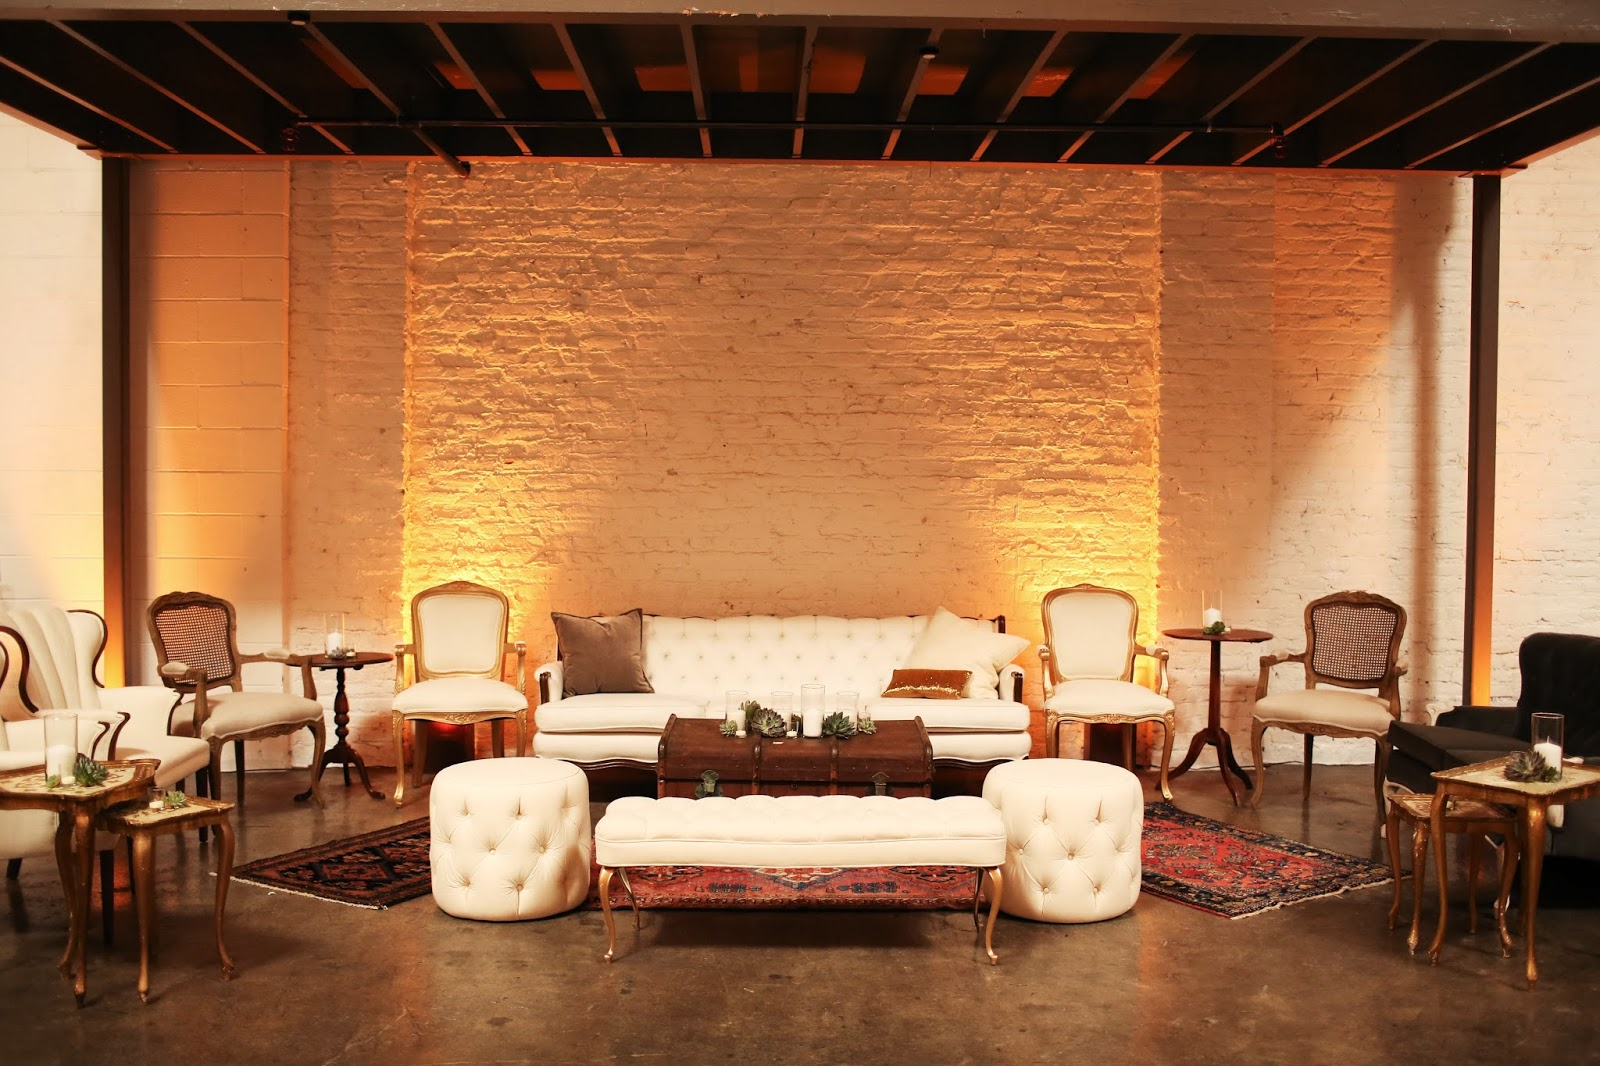 Venue Bluxome Street Winery Photography Ja Tecson Videography Alumiq Productions Vintage Als Decor One True Love